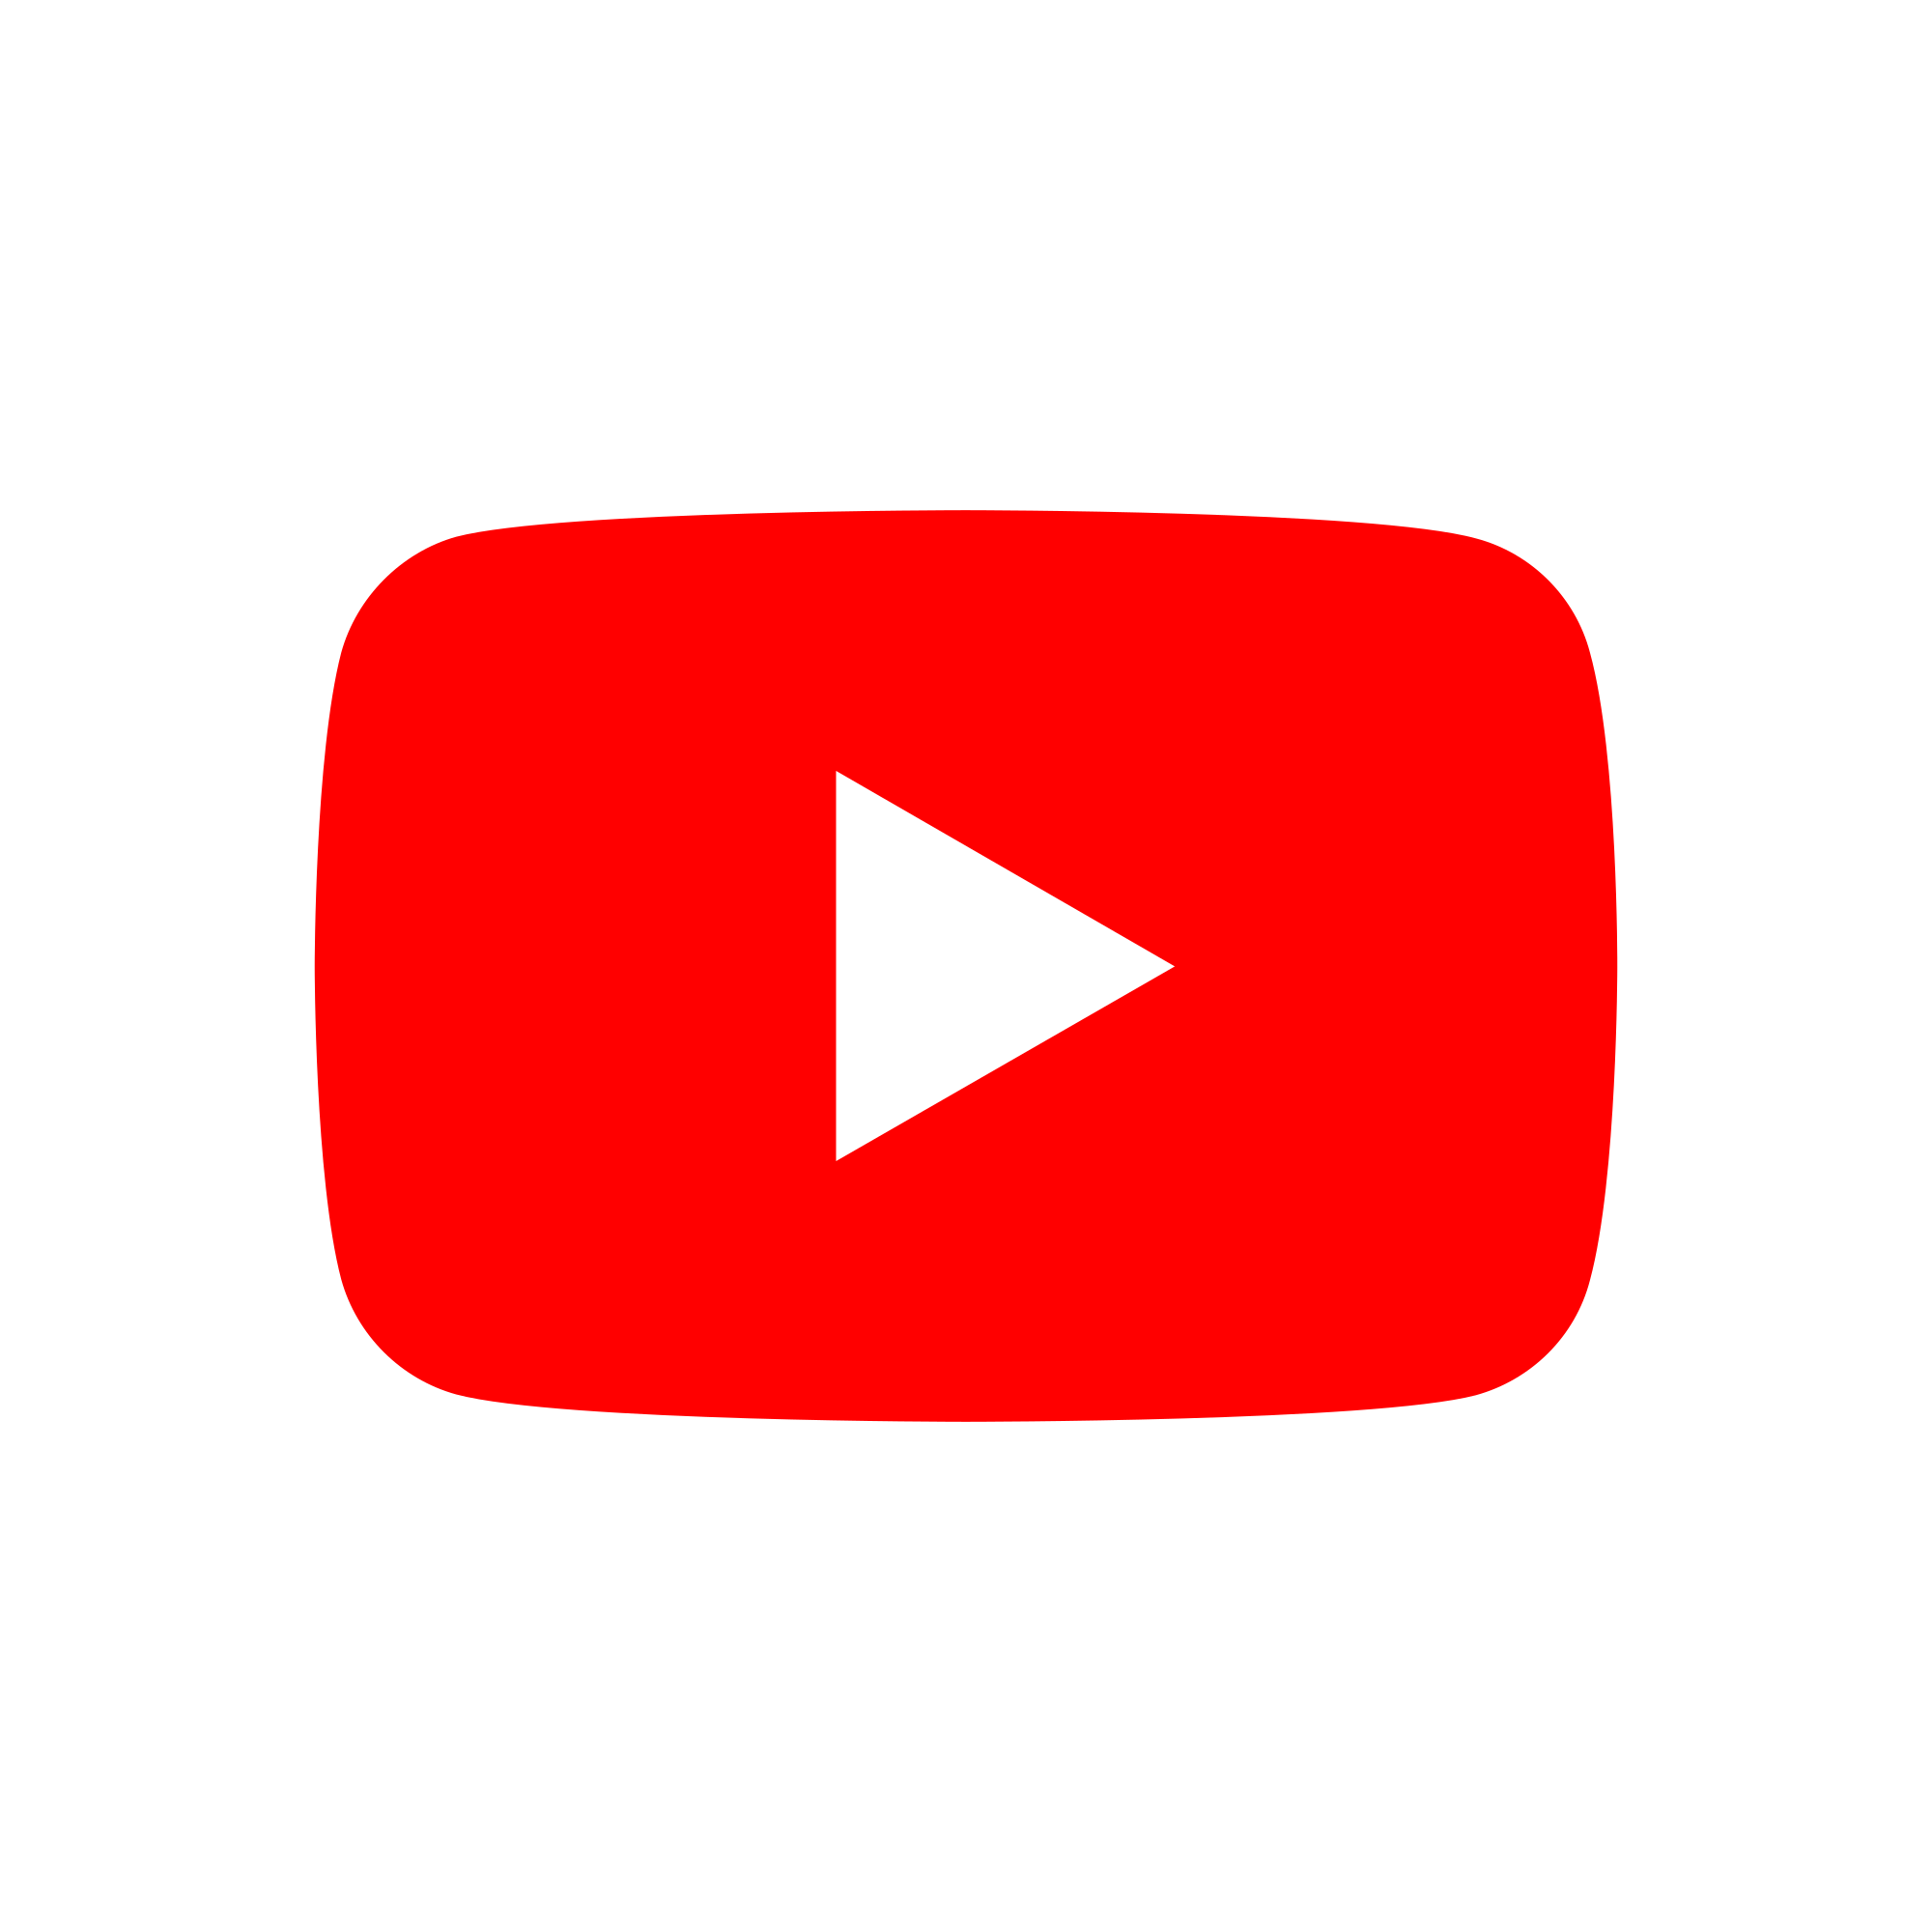 Youtube Png & Free Youtube.png Transparent Images #1088.